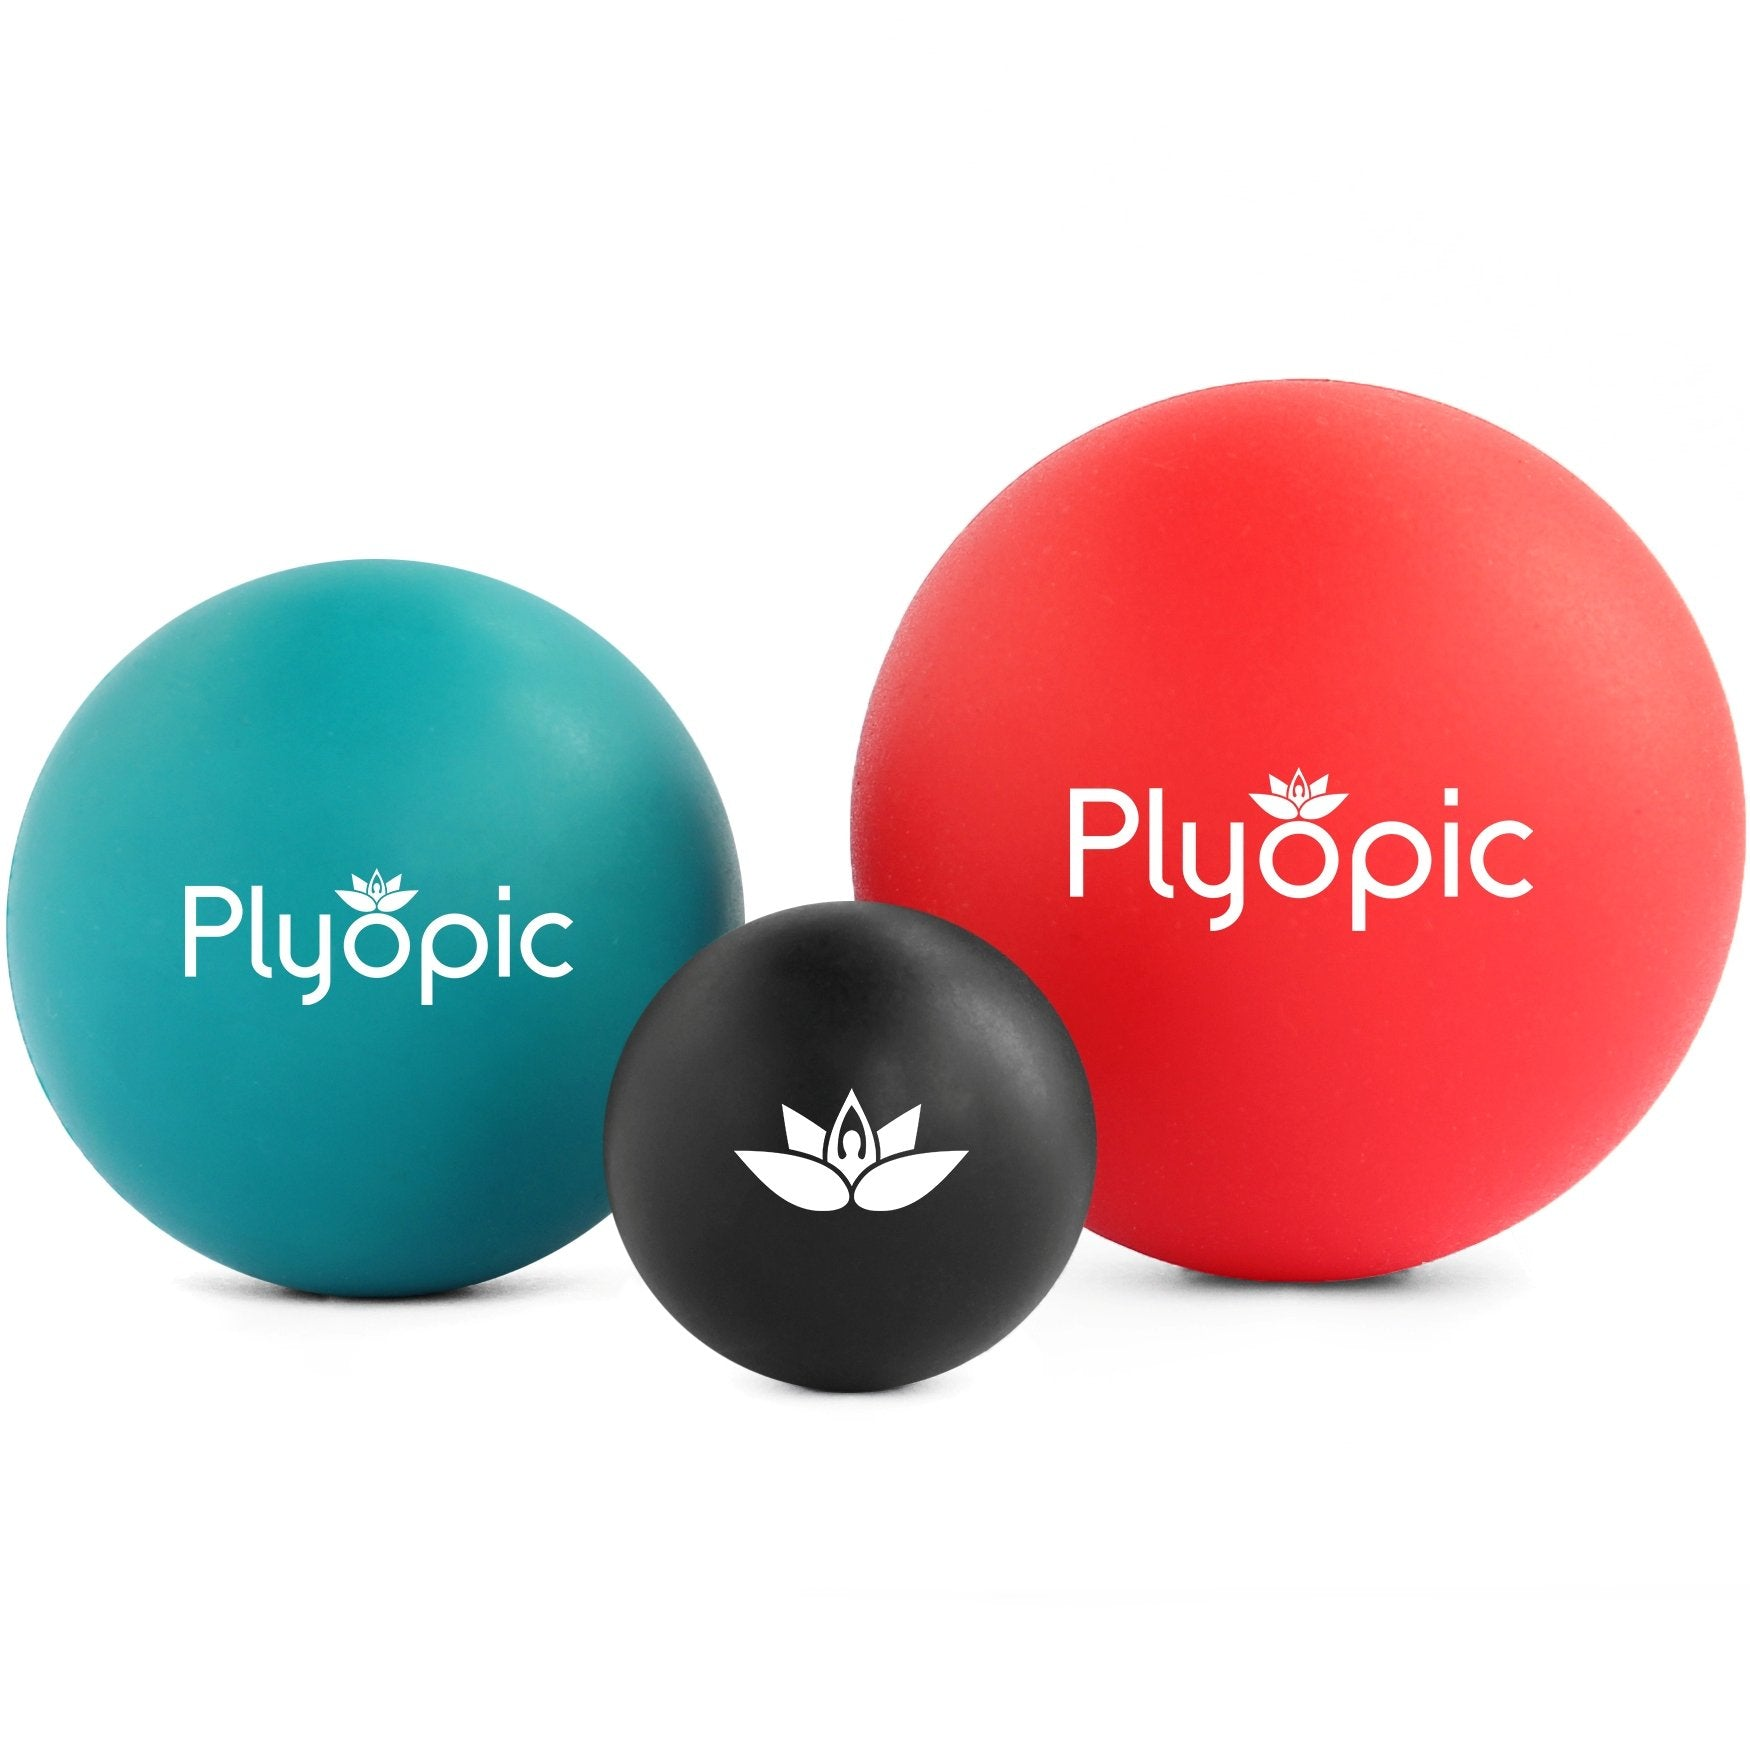 Plyopic-Plyopic Targeted Release Massage Ball Set With Small Medium and Large Smooth Ball